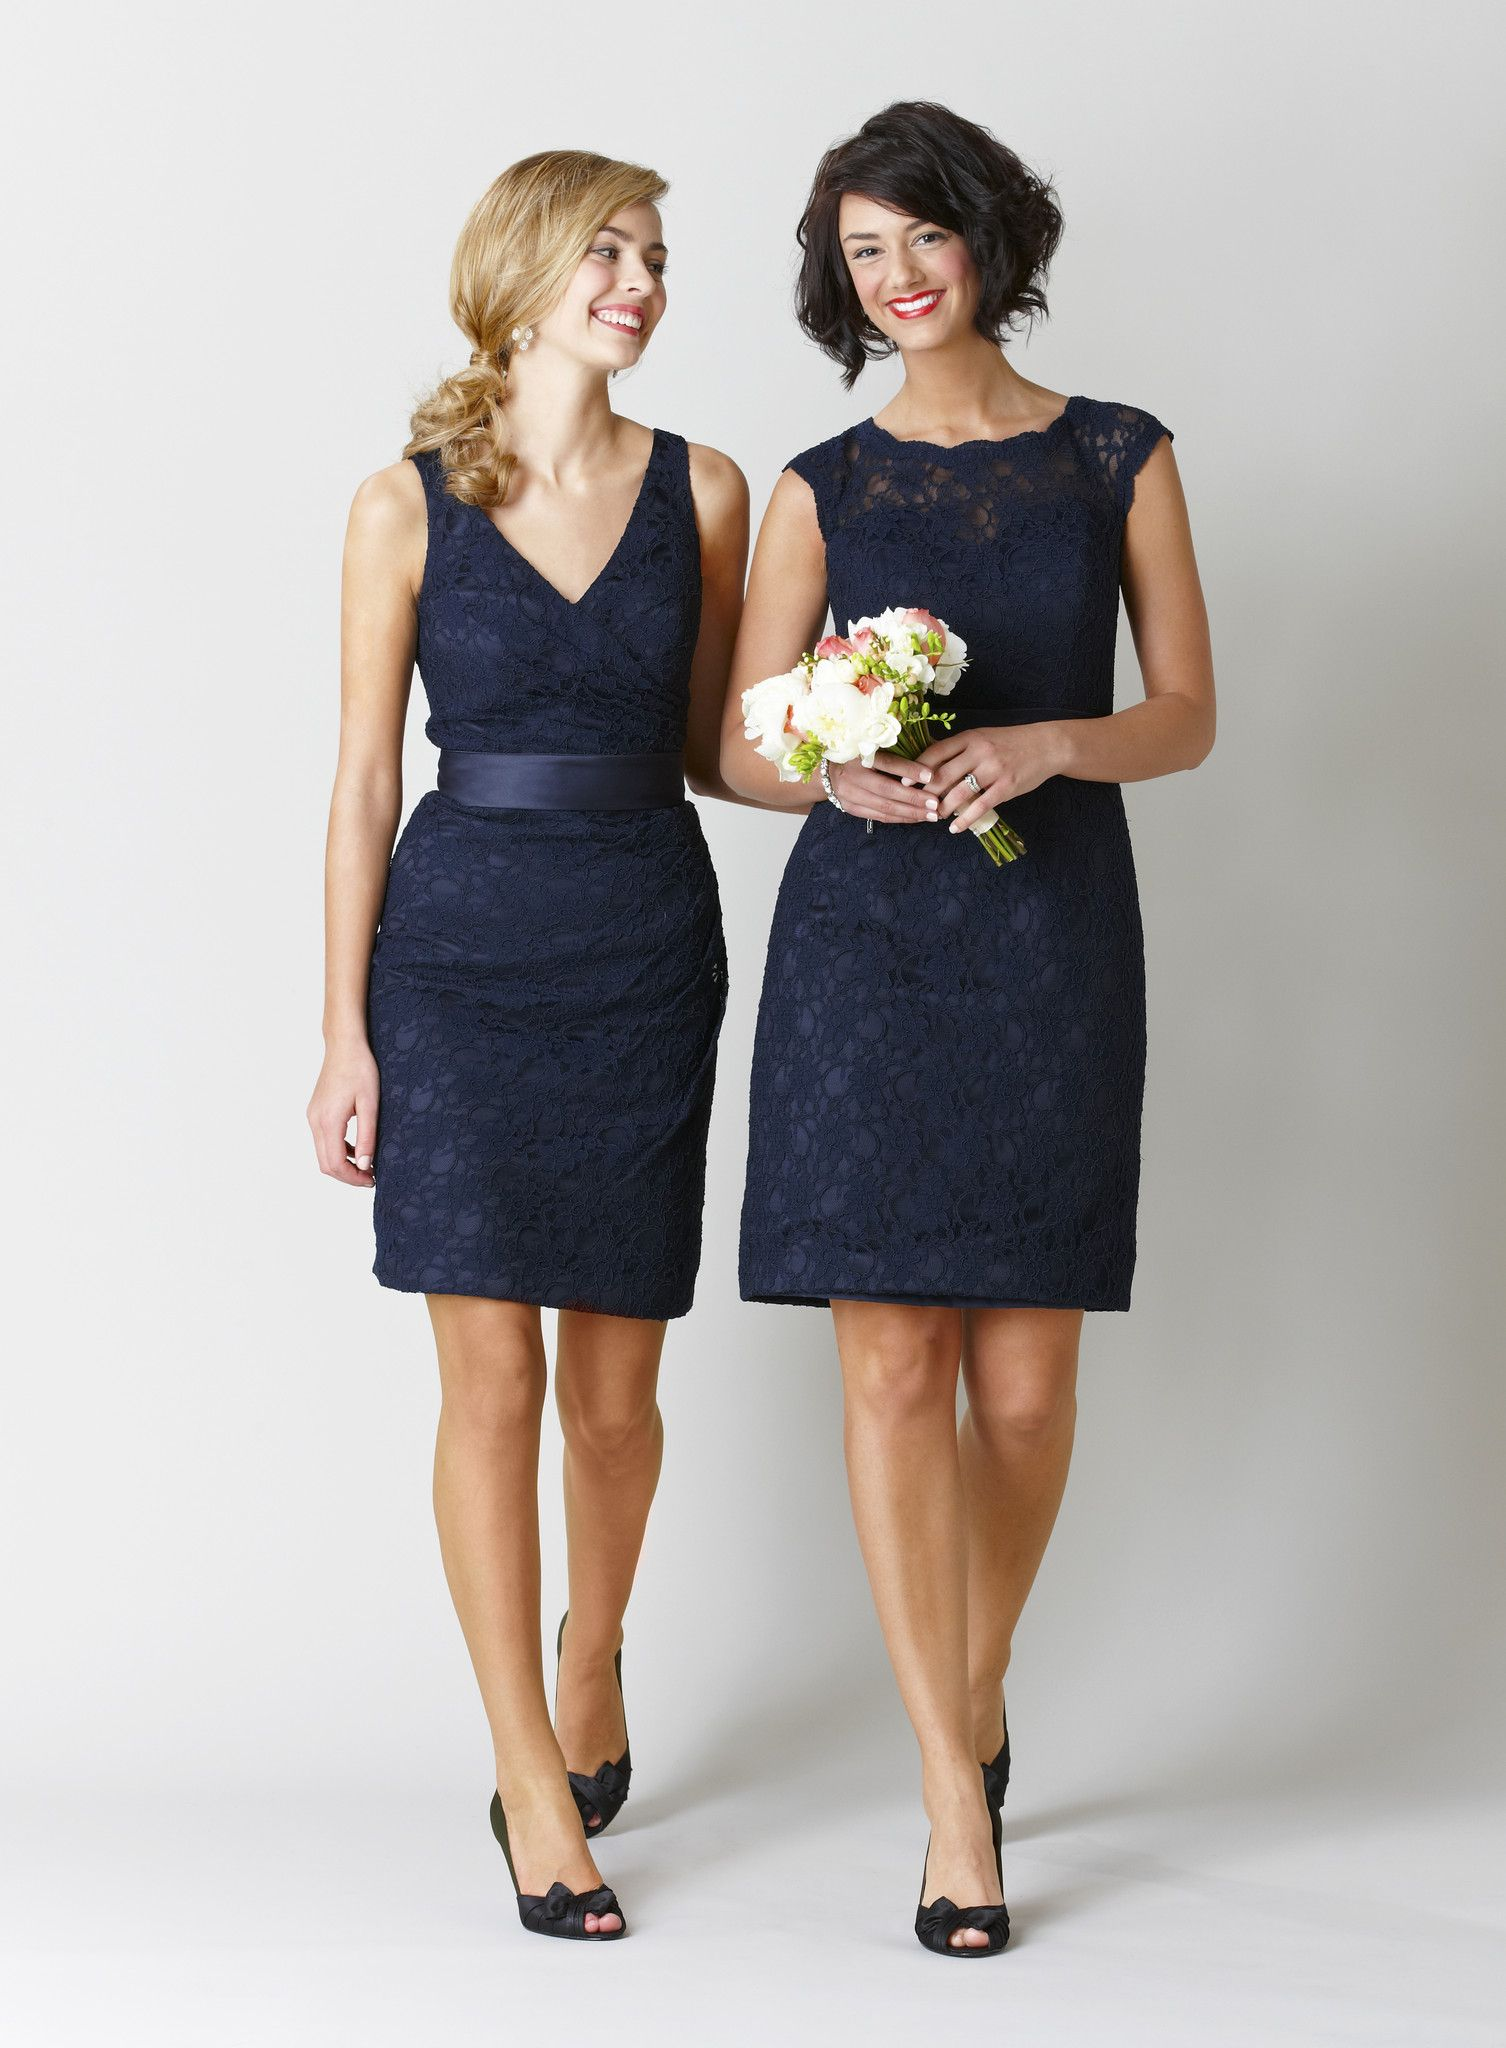 Harper love the lace bridesmaids and navy blue bridesmaids